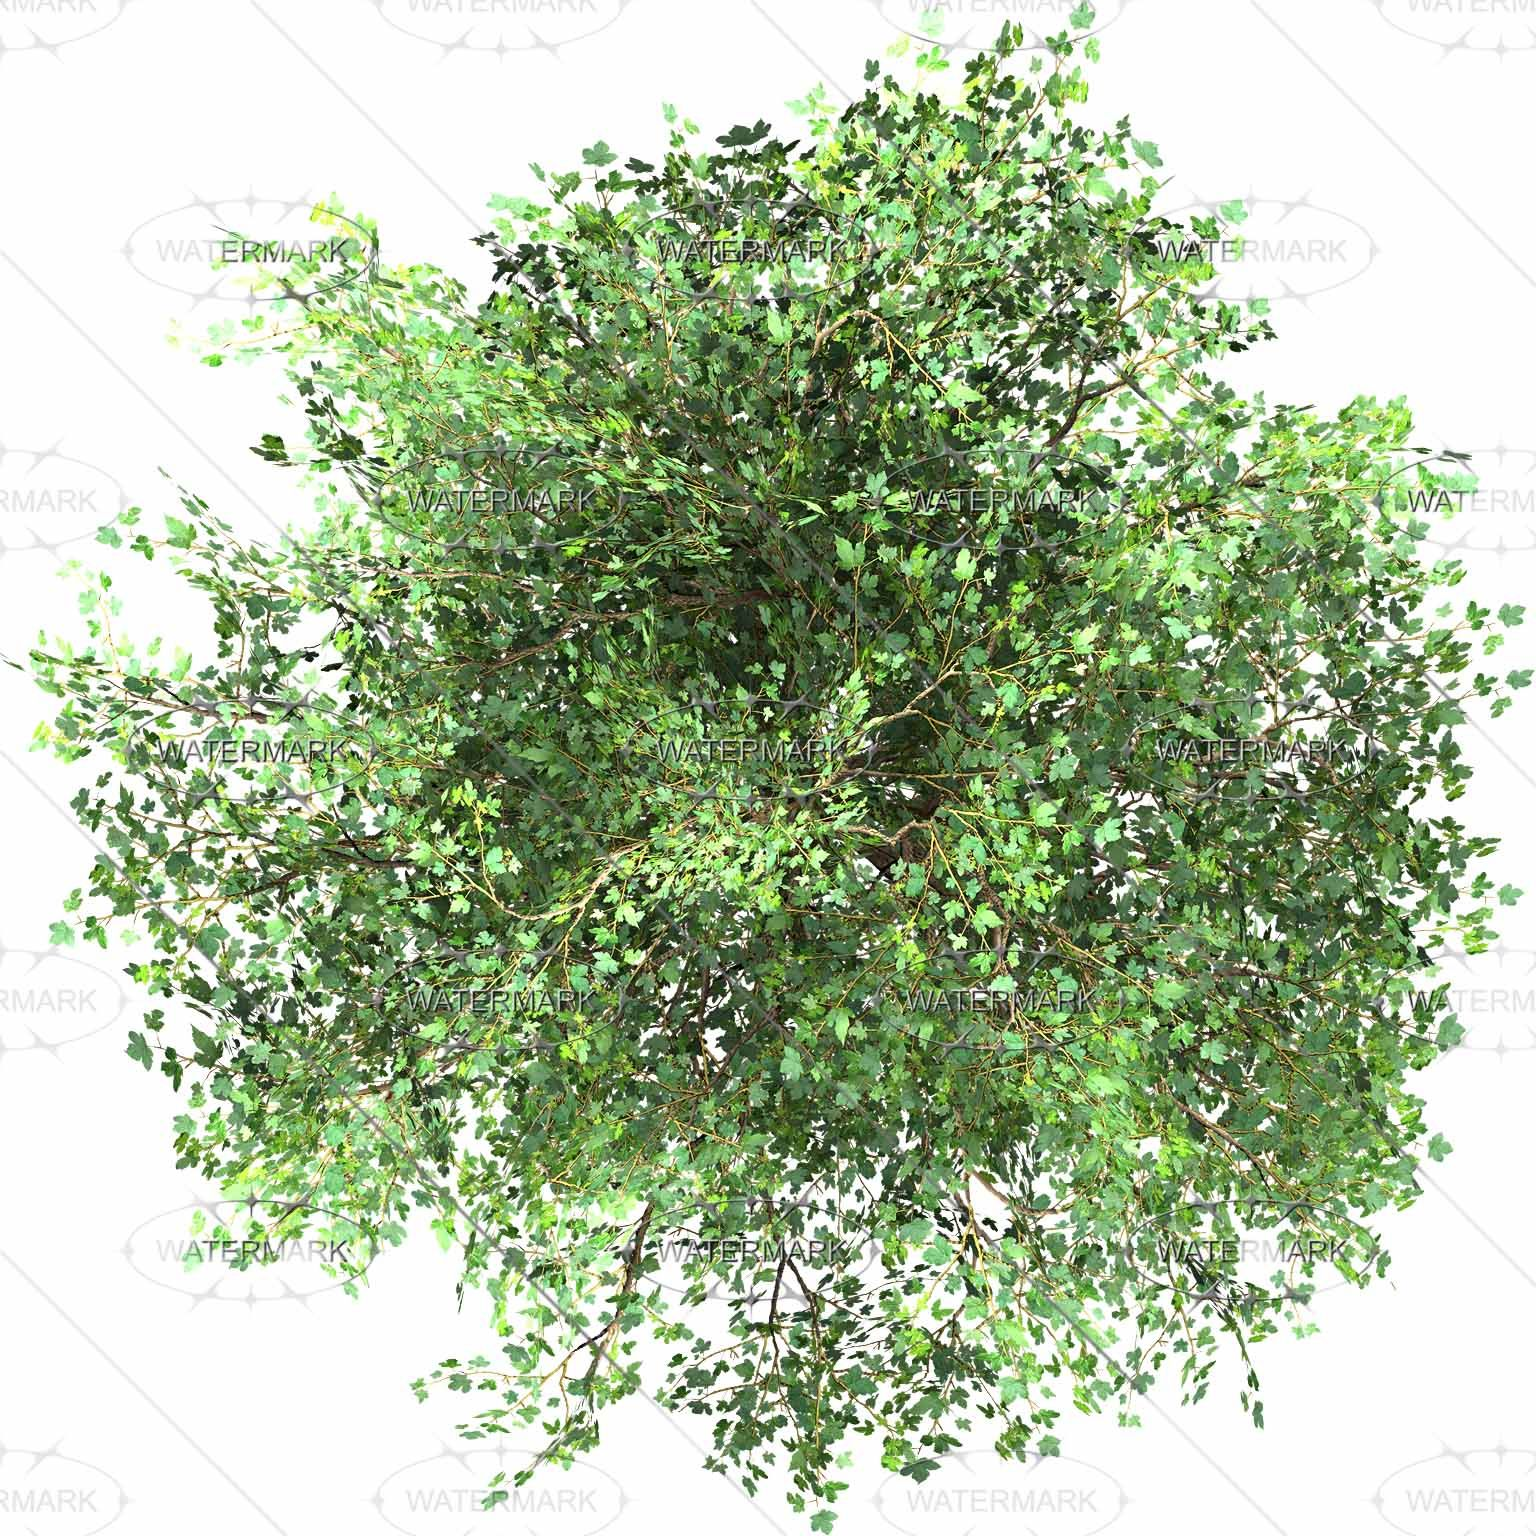 Top view plants 02 2d plant entourage for architecture - Png Tree Top M C Y Th Hi N A Pinterest Medium And Html